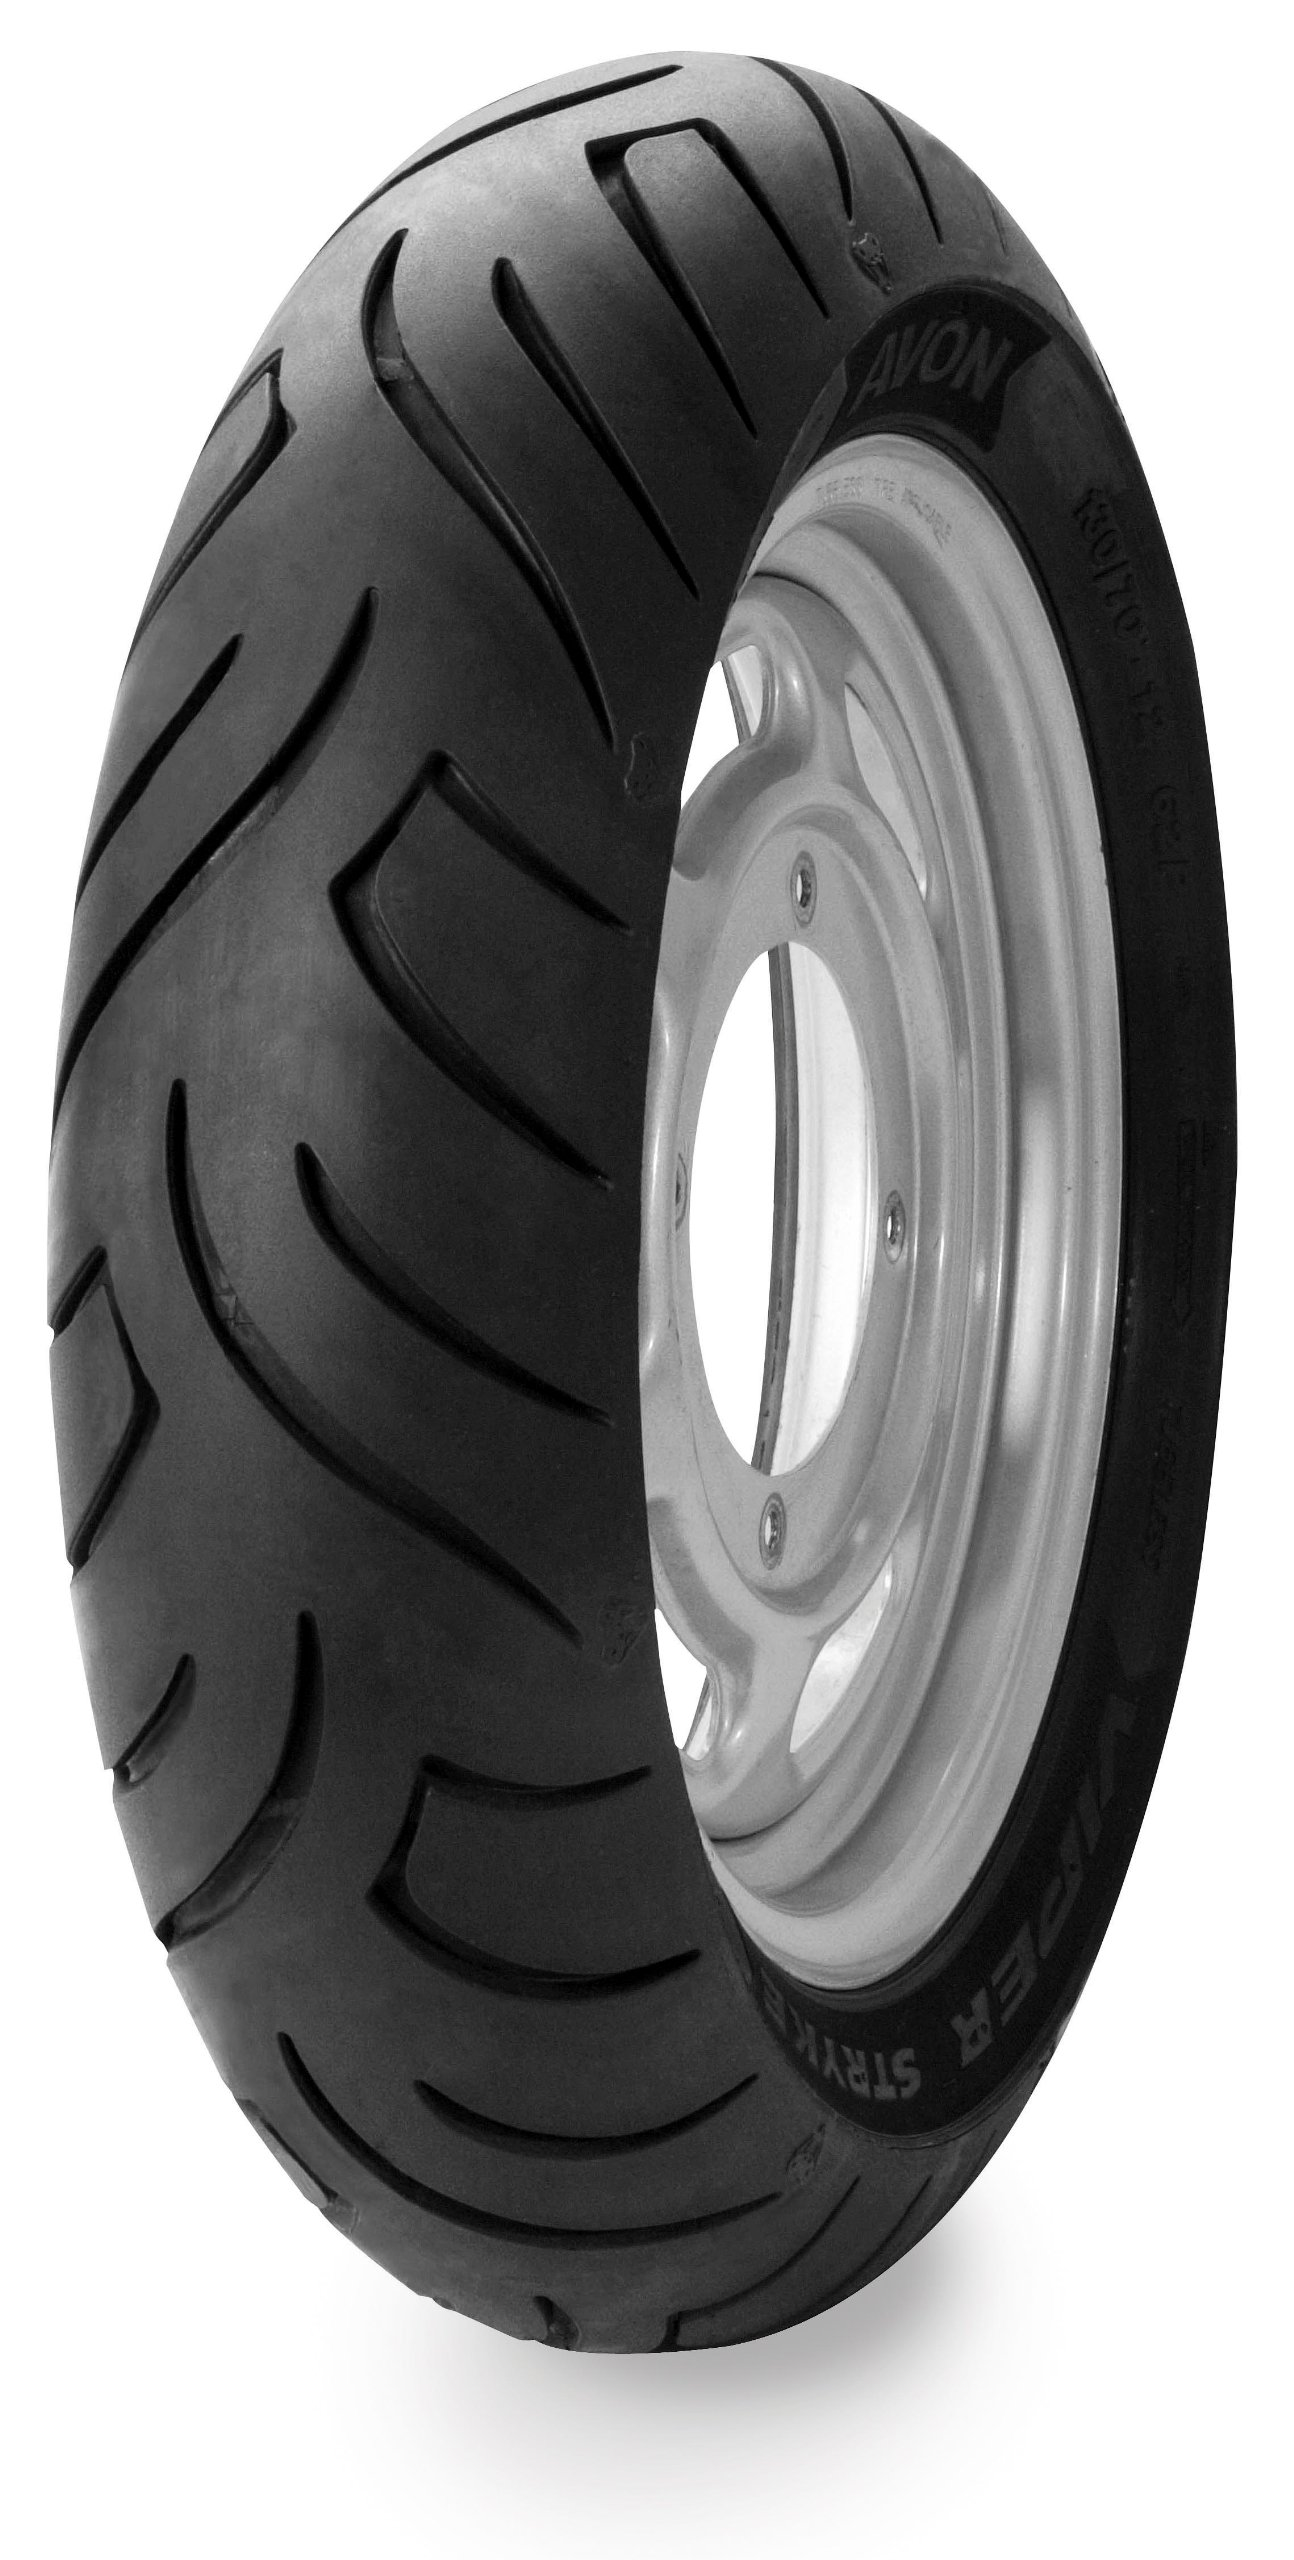 Avon Tyres Viper Stryke AM63 Motorcycle Tire 120/70-12